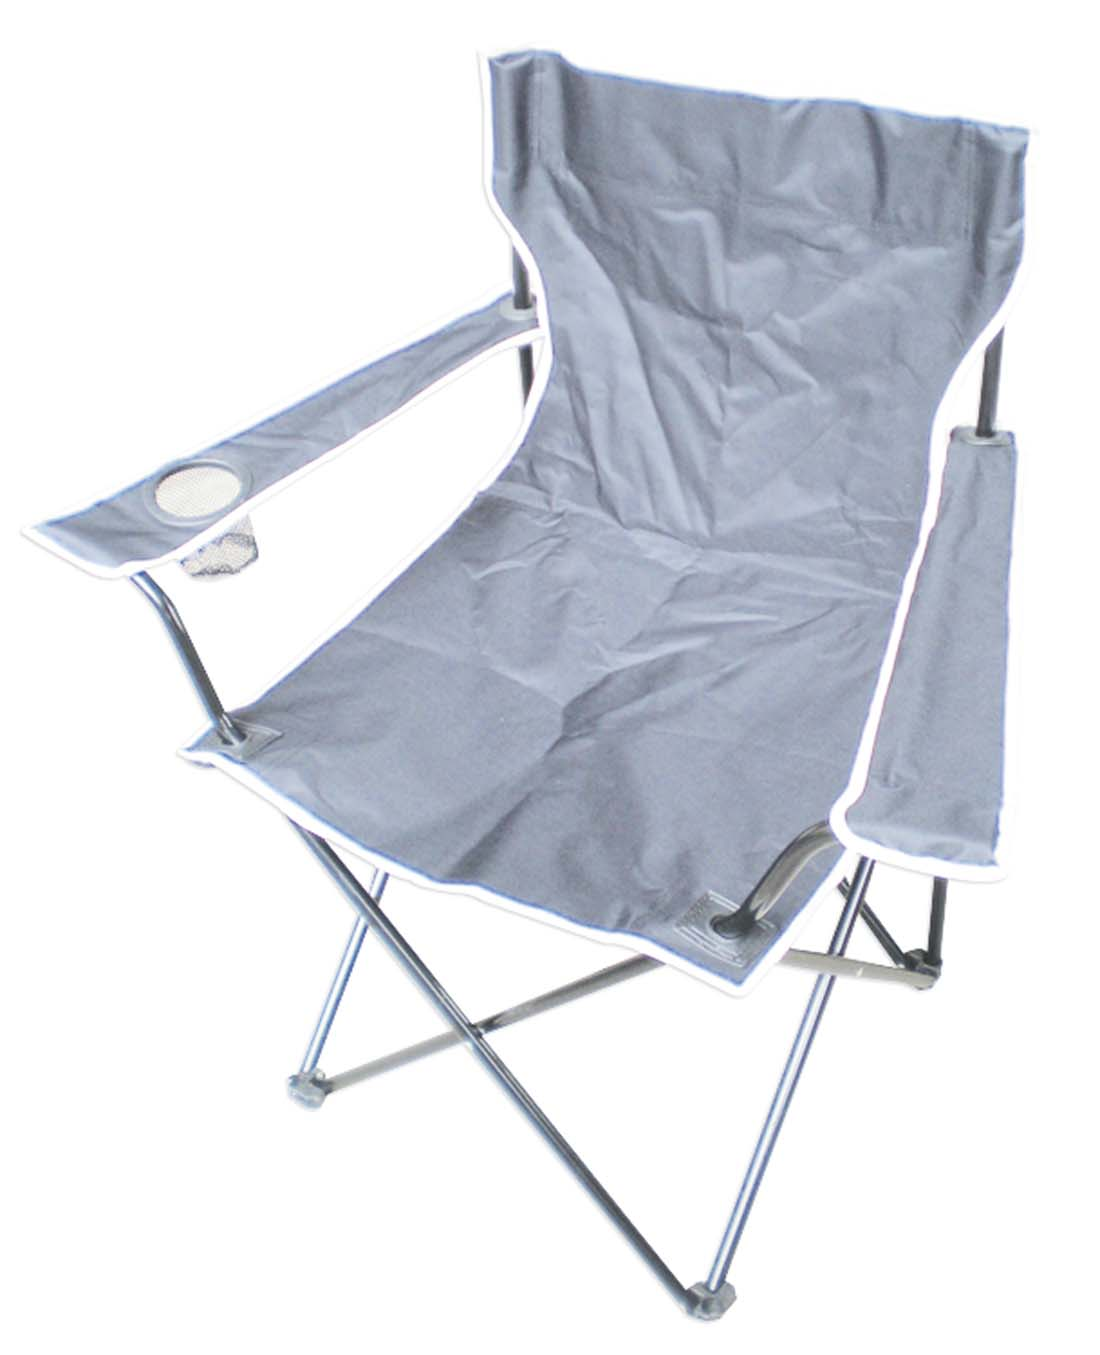 View CAMPING CHAIR 20 X 20 X 33 INCH GRAY